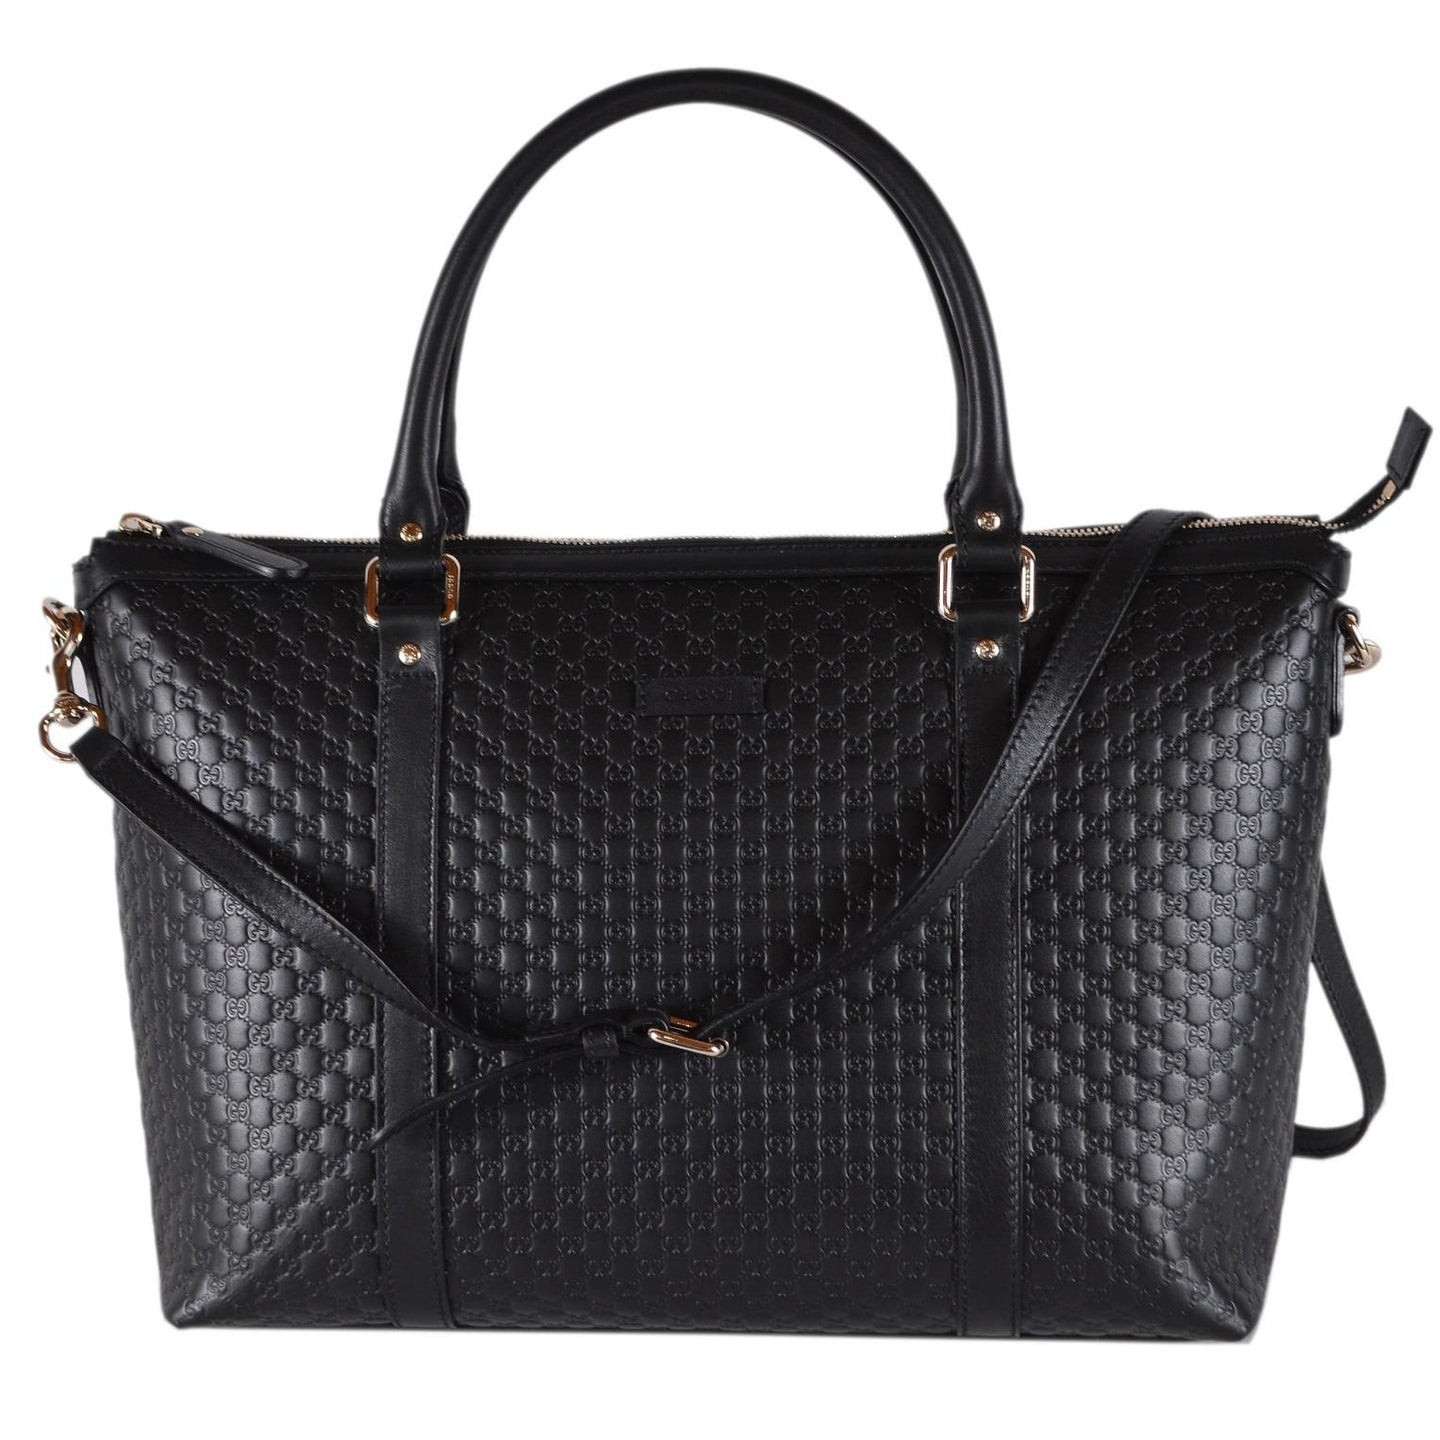 33c5c3e26d9 Designer Handbags | Find Great Designer Store Deals Shopping at Overstock